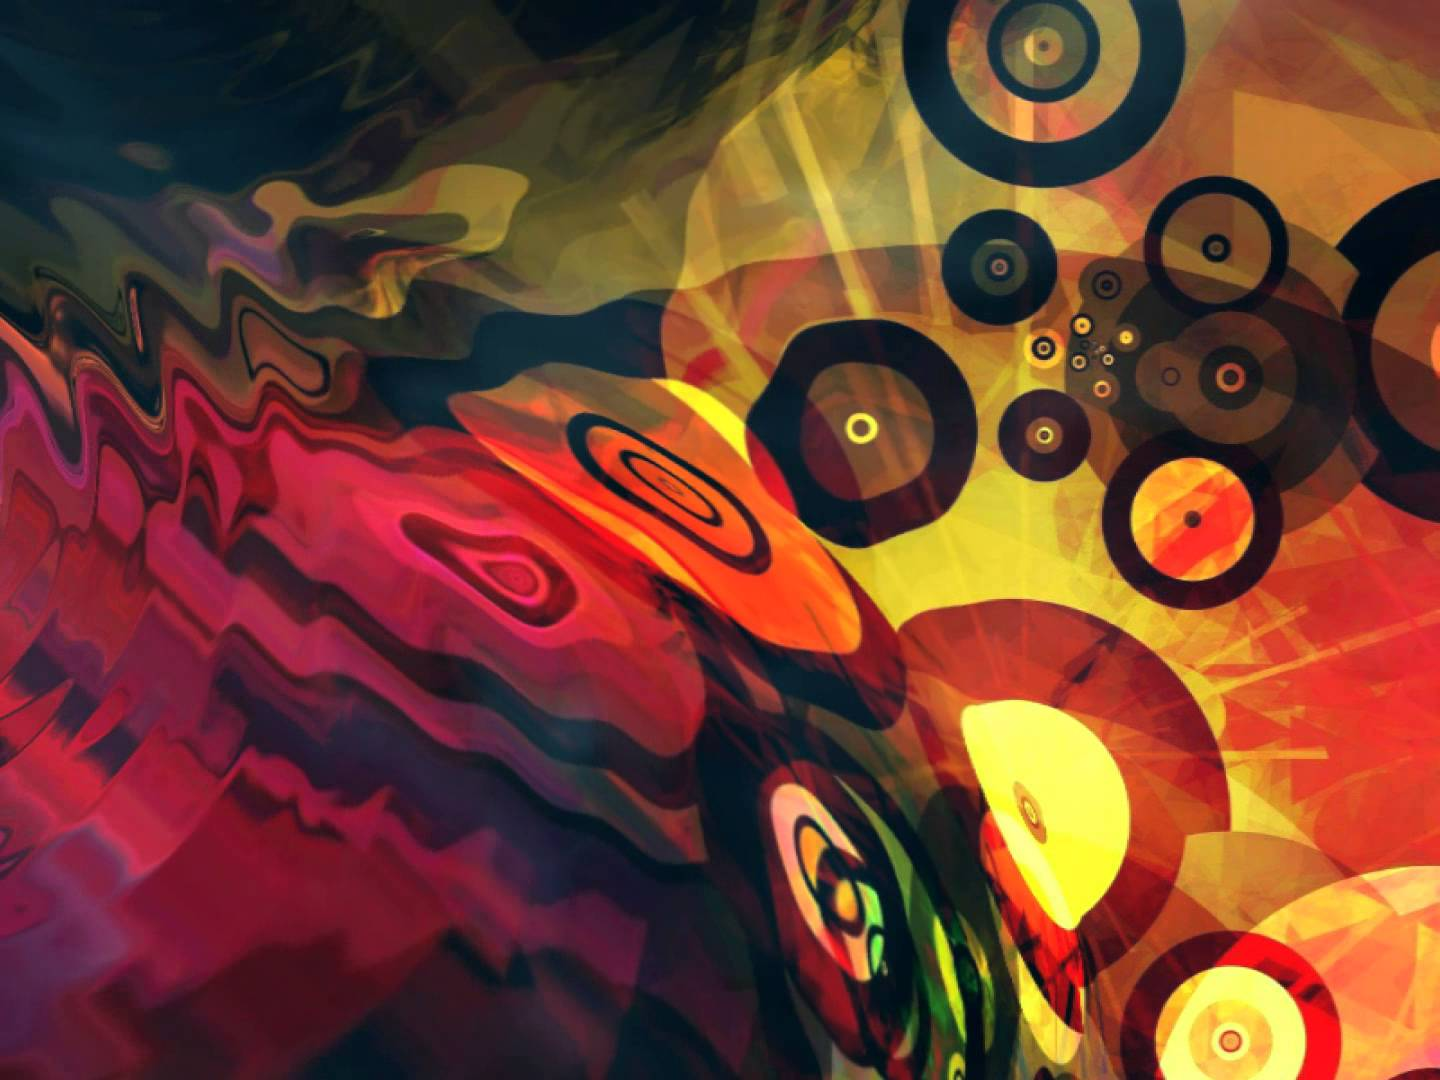 Free download The Goal Hip Hop Background Music HD 2014 instrumental